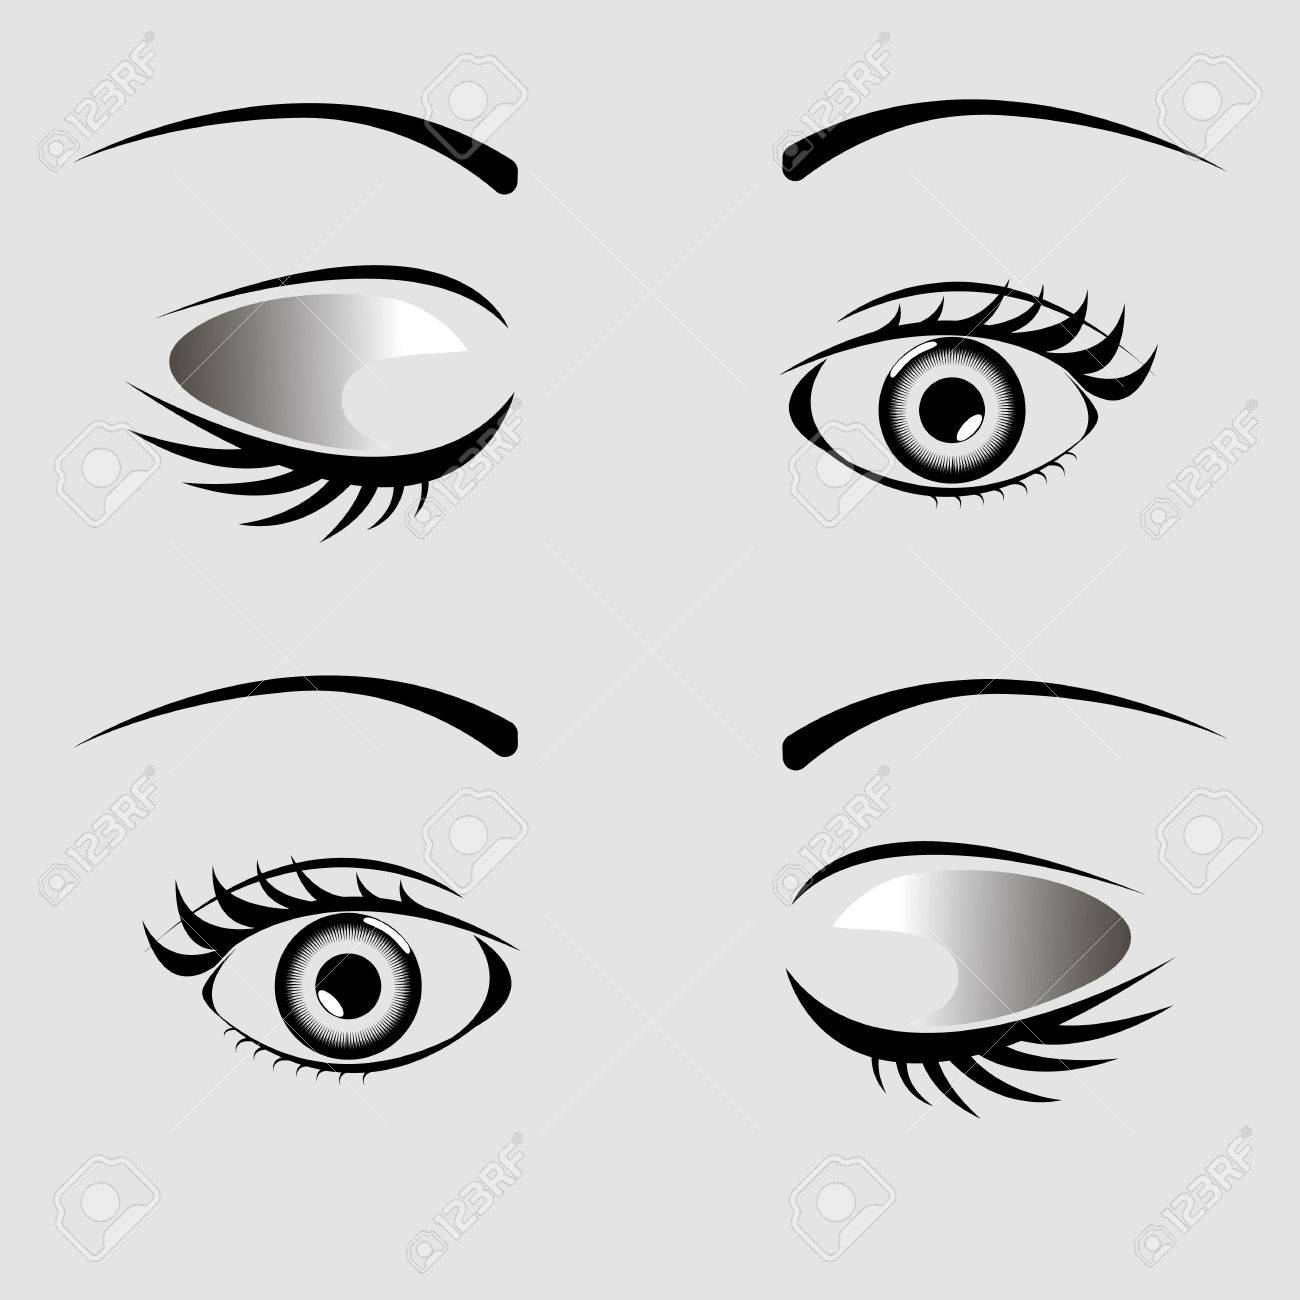 Open and closed eyes with eyelash and eyebrow on a gray background - 79142266